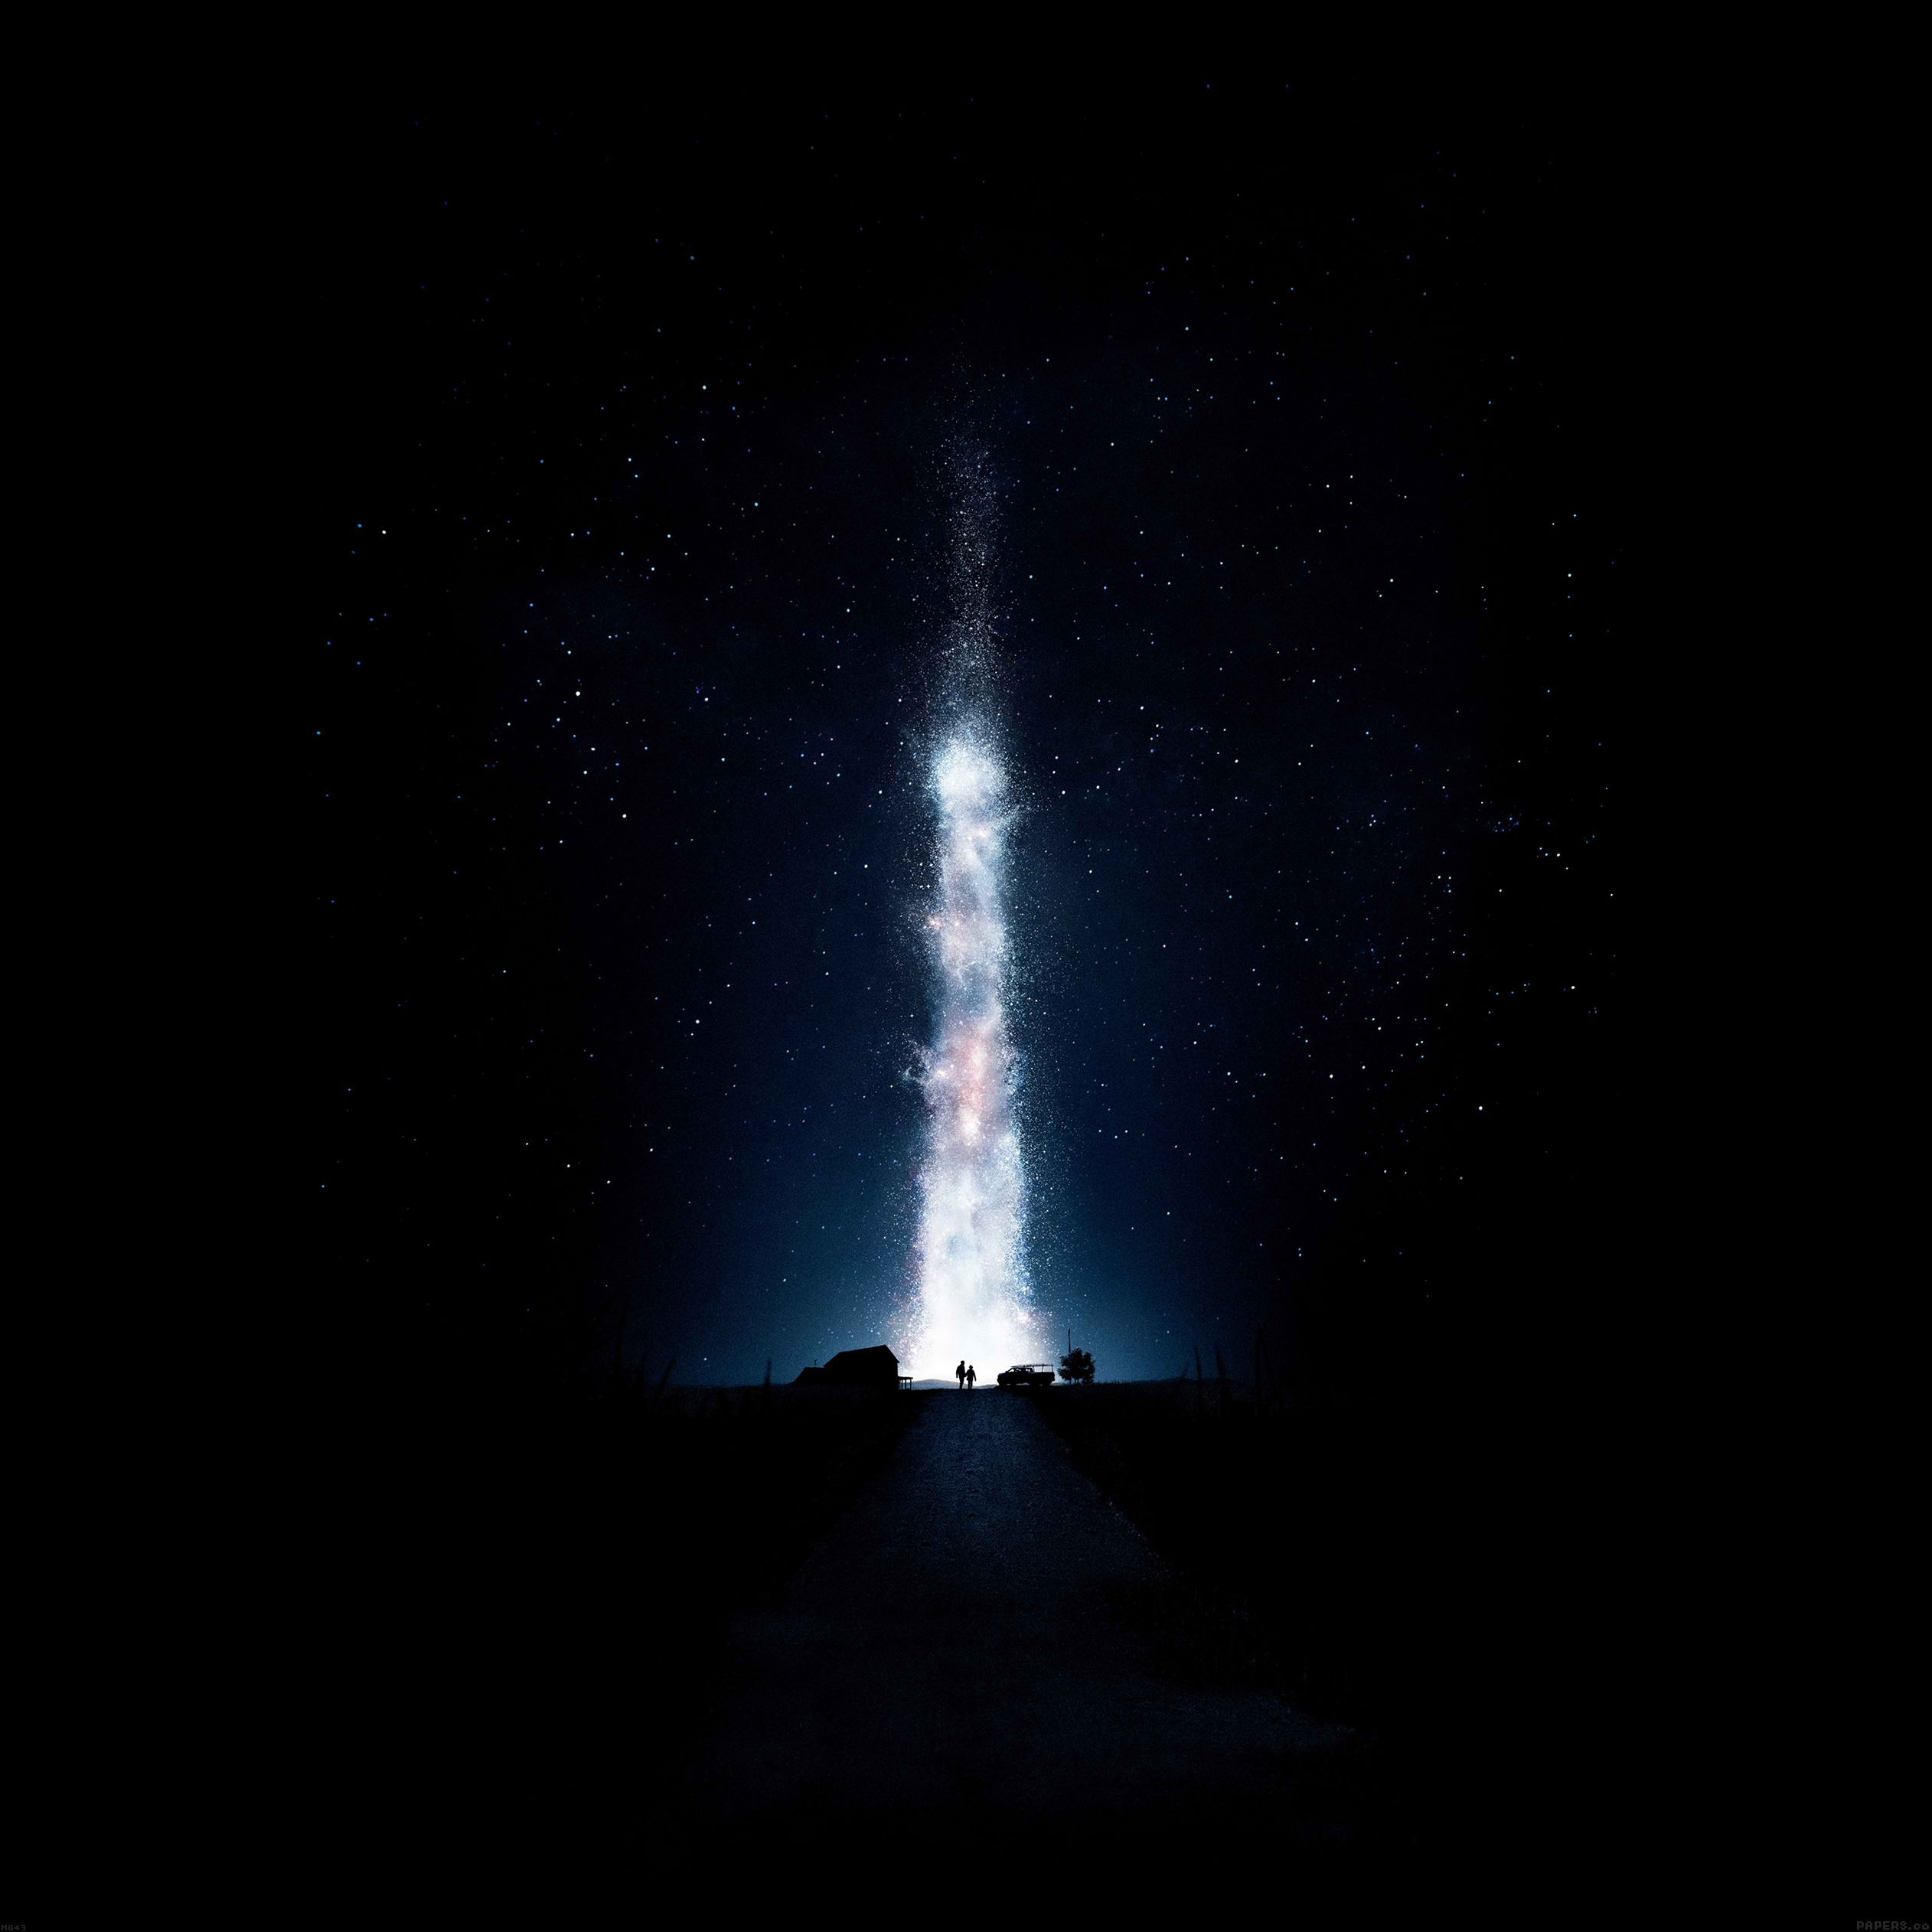 interstellar-space-night-stars-fire-best-9-wallpaper